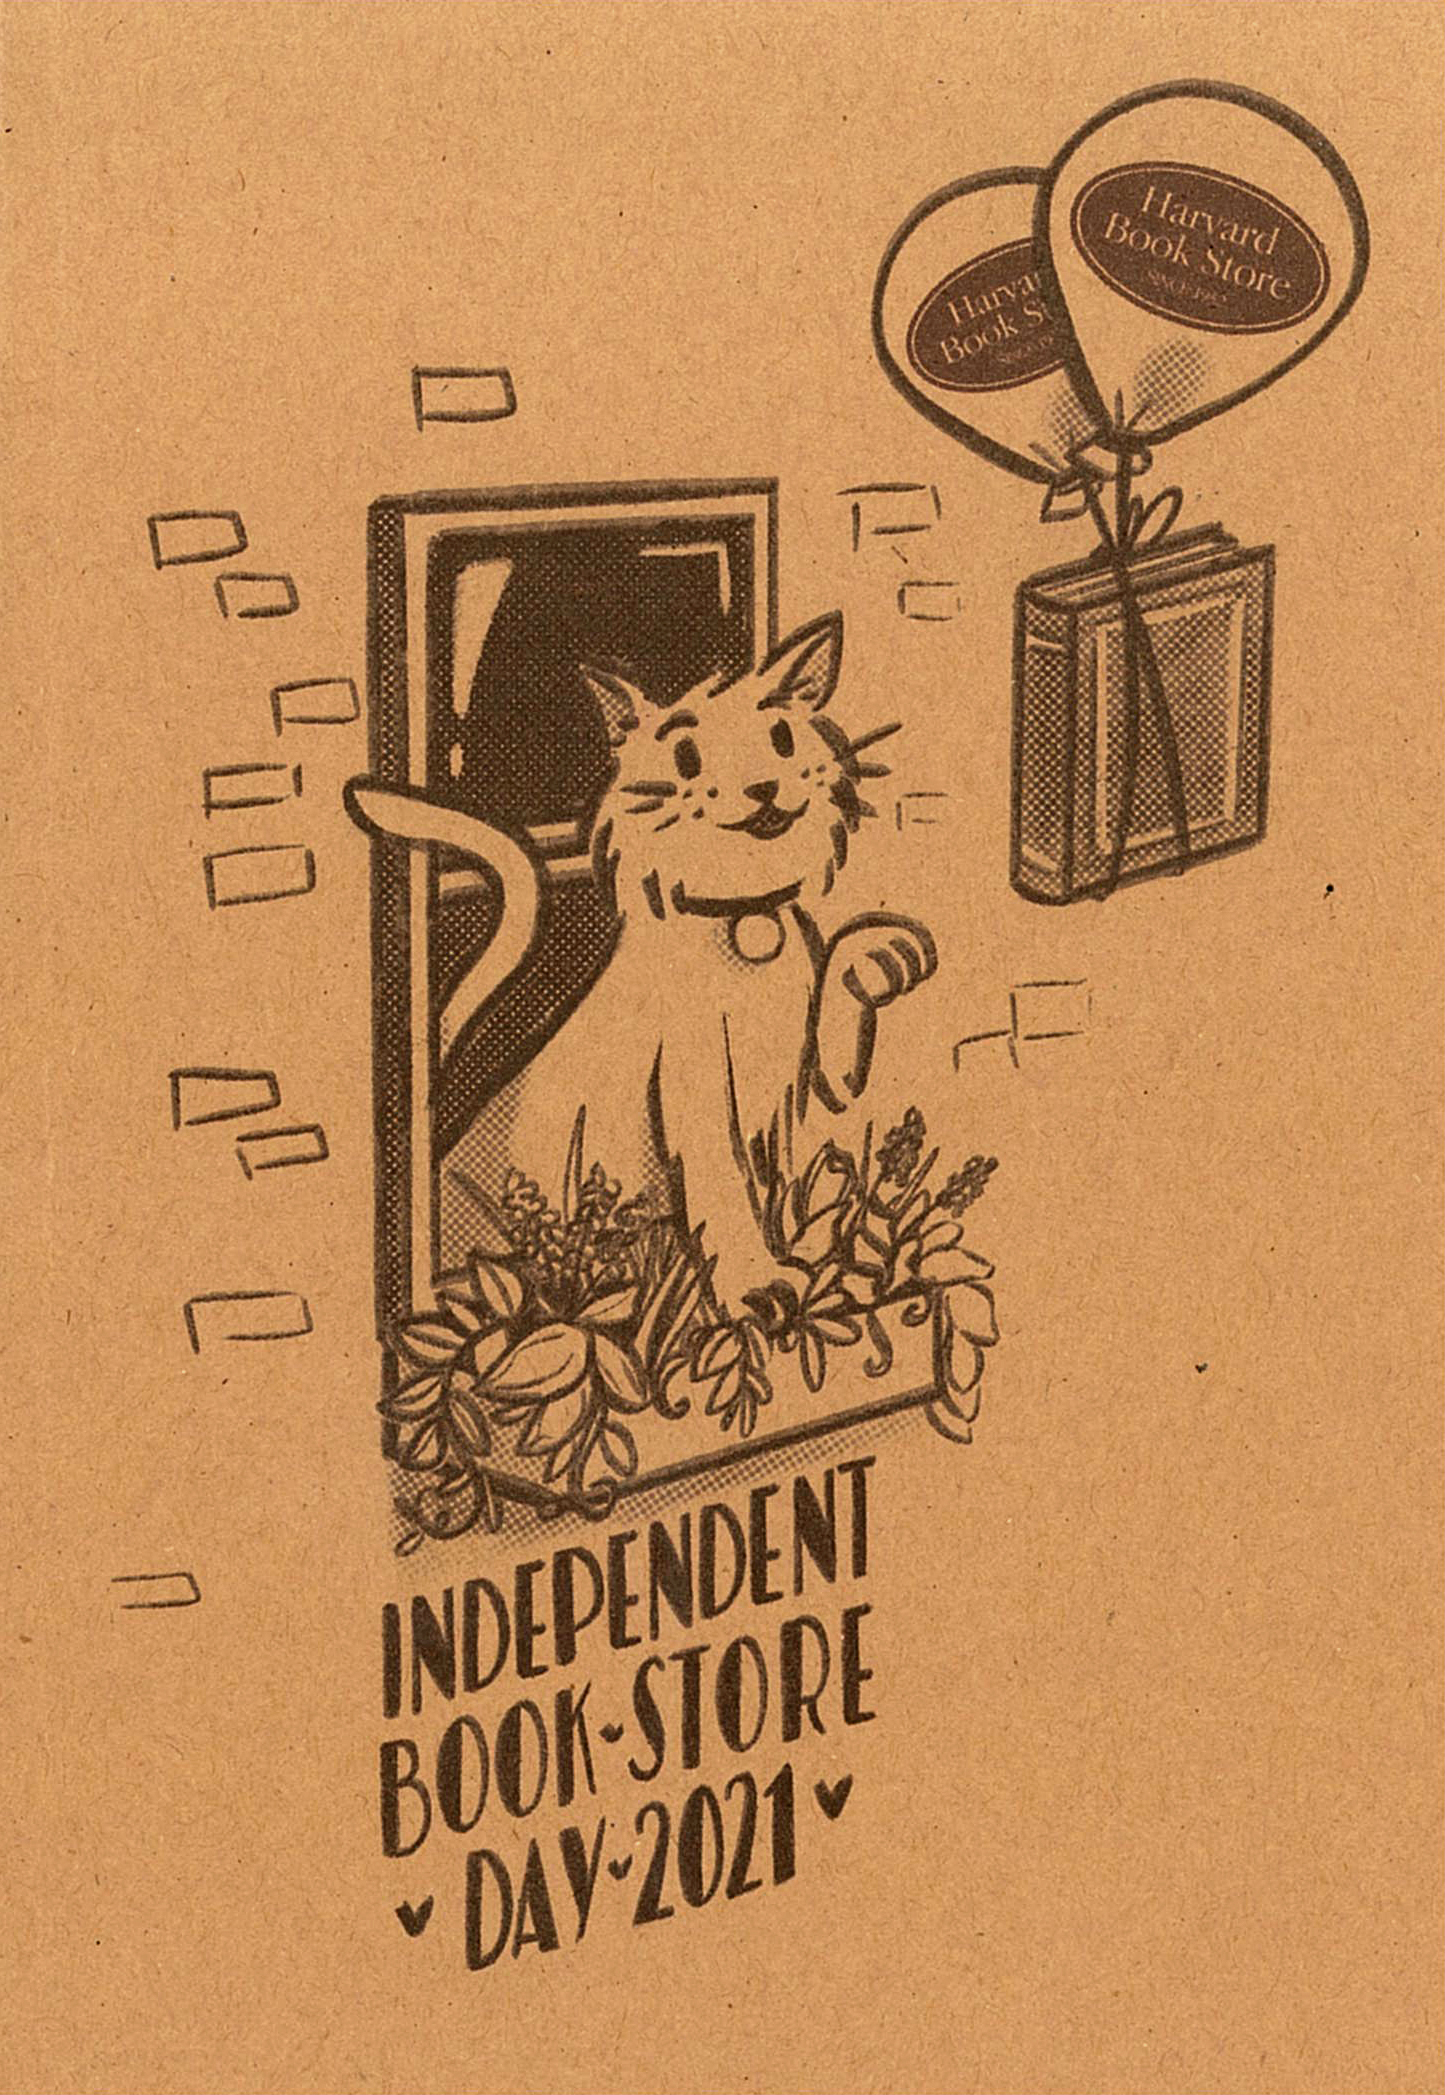 Lined Journal for Independent Book Store Day 2021